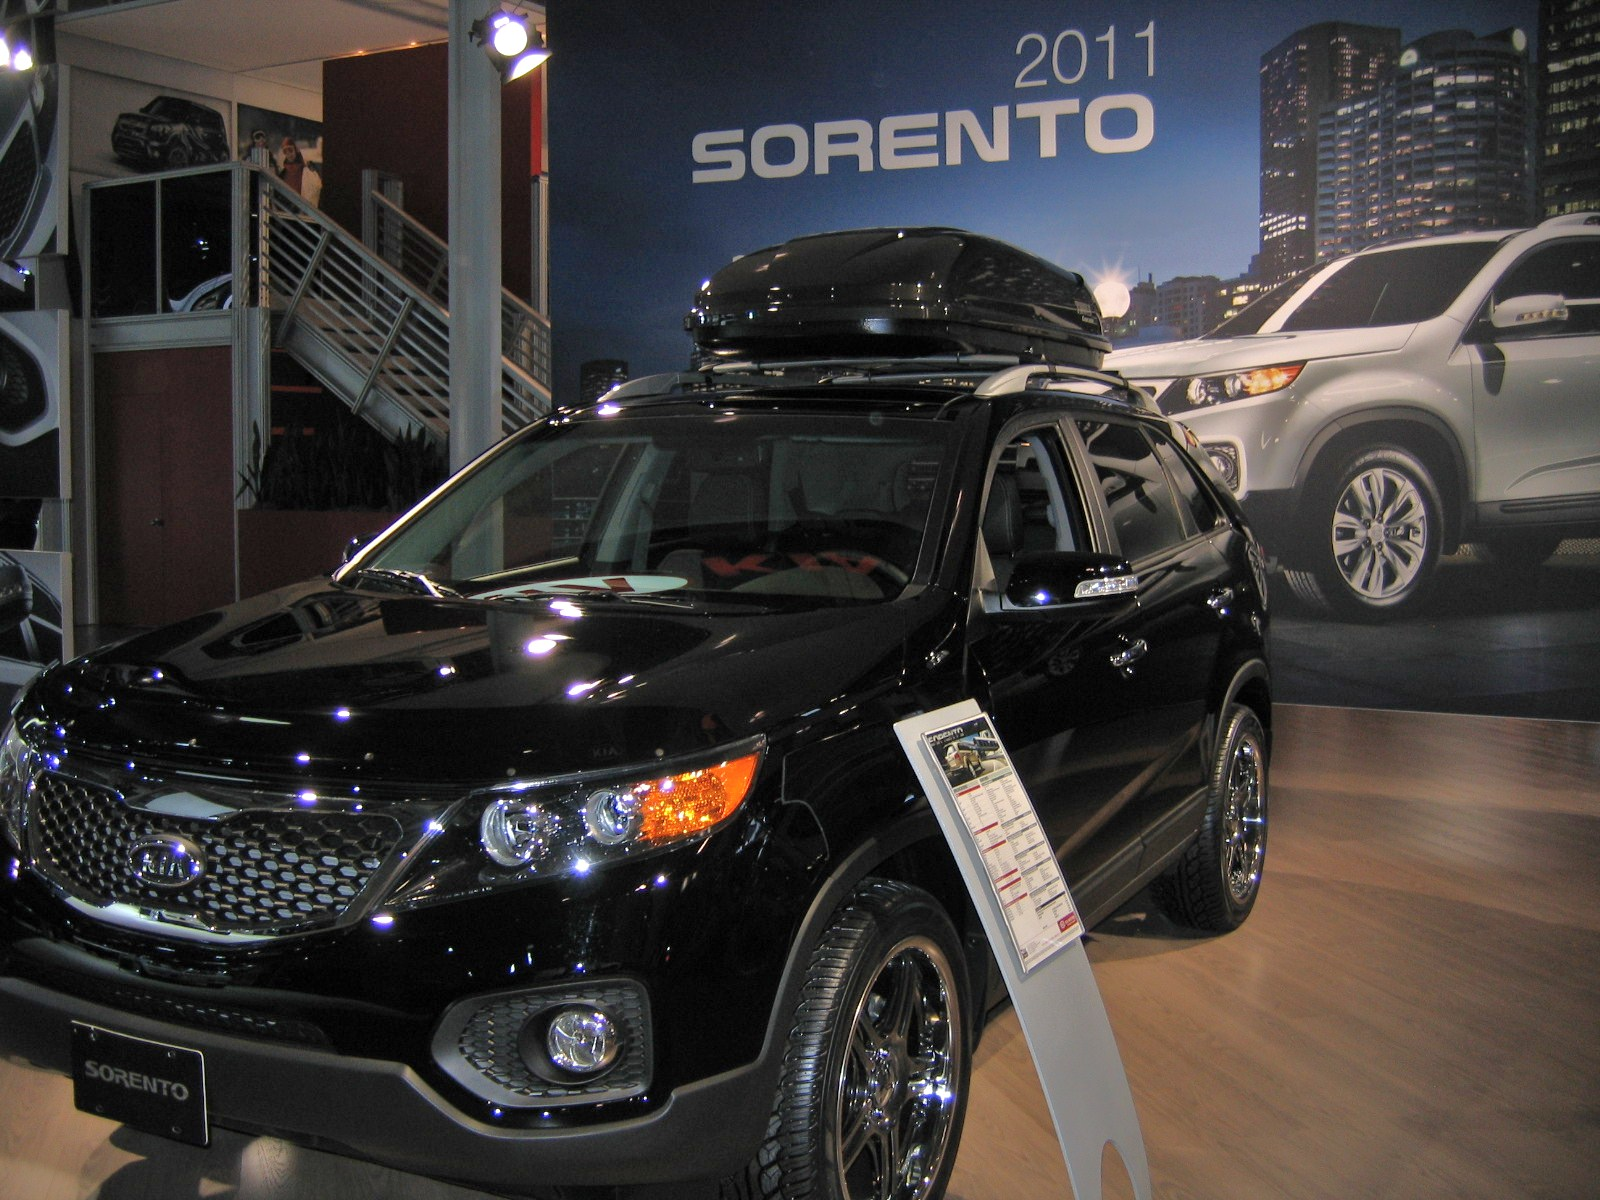 2011 Sorento has No Roof Rails with Limited Package ...